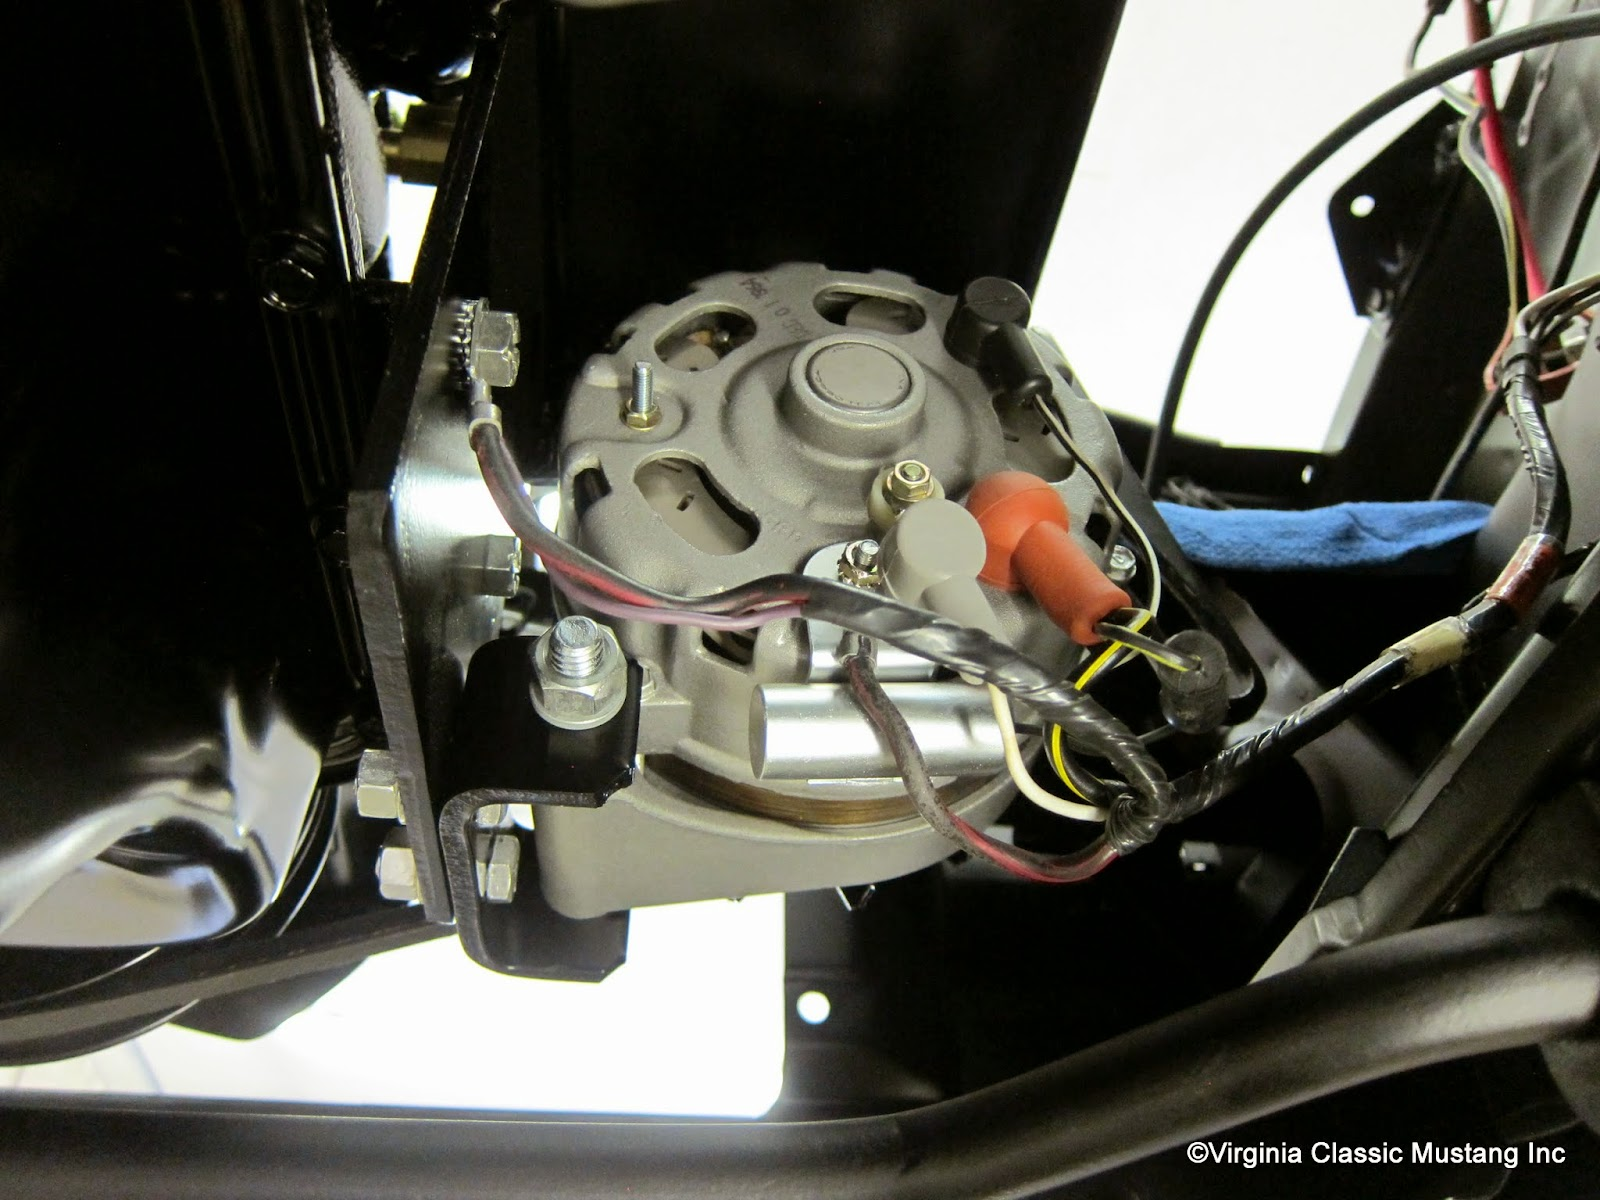 Wiring diagram 1965 mustang alternator free download wiring diagram free download wiring diagram virginia classic mustang blog just the details 1965 mustang of wiring asfbconference2016 Gallery